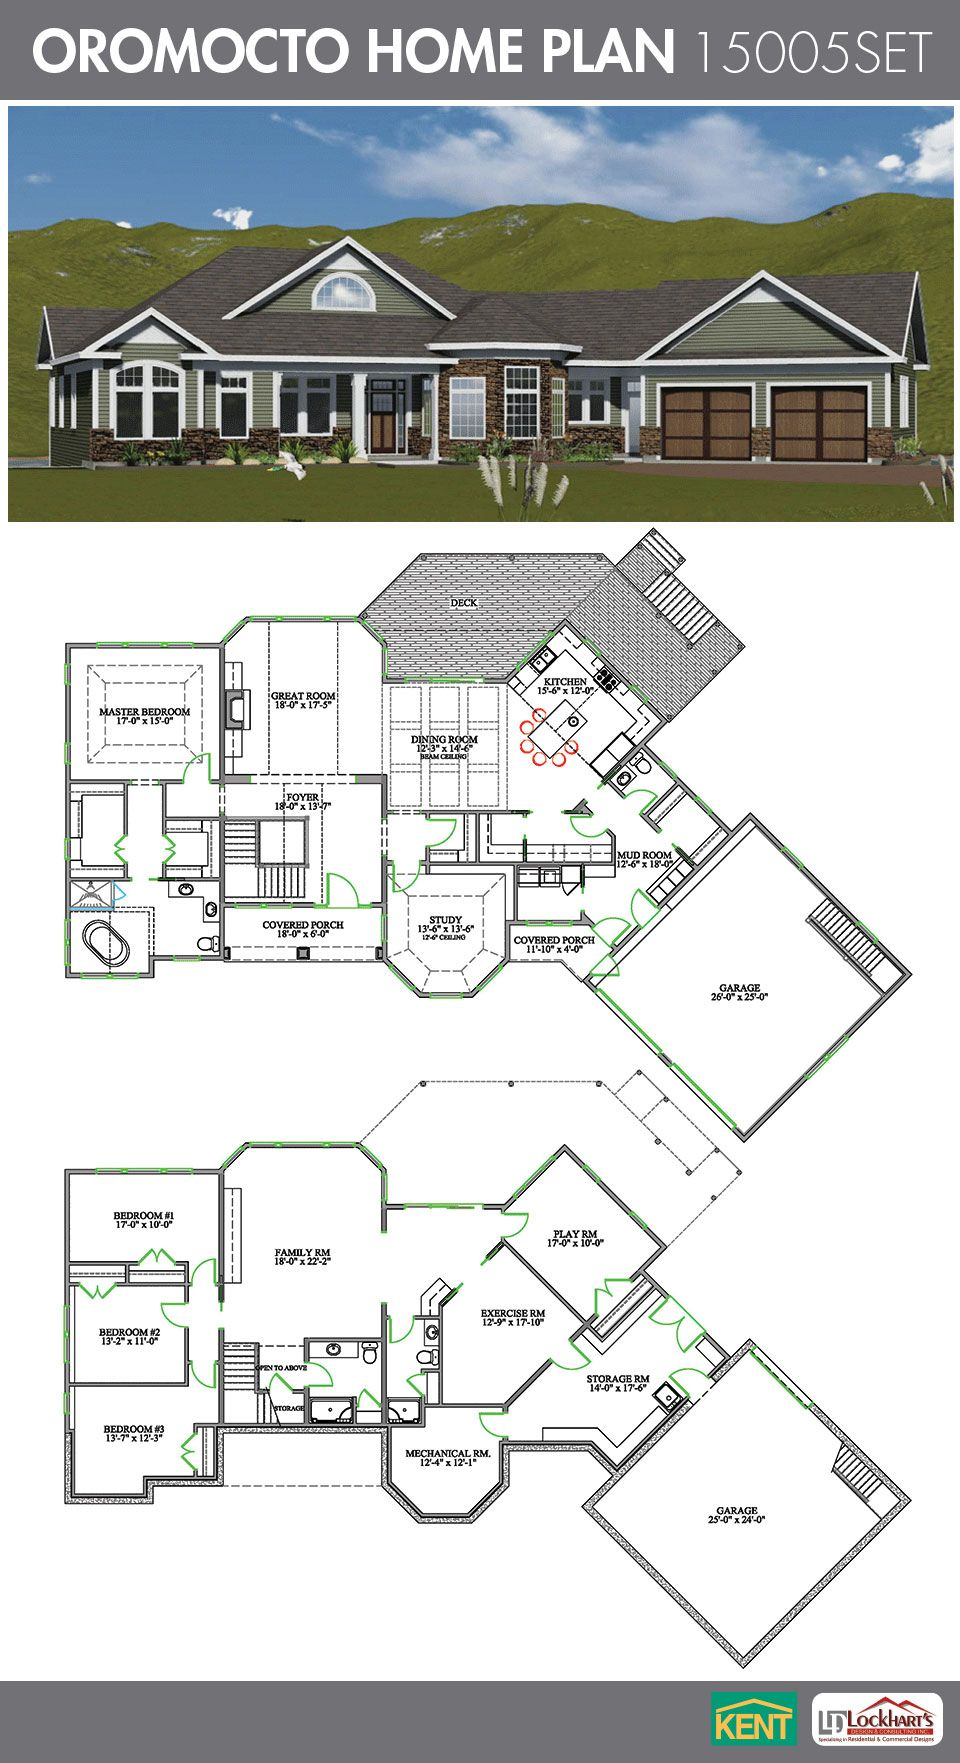 Oromocto Home Plan House Plans Open Concept Great Room Kent Building